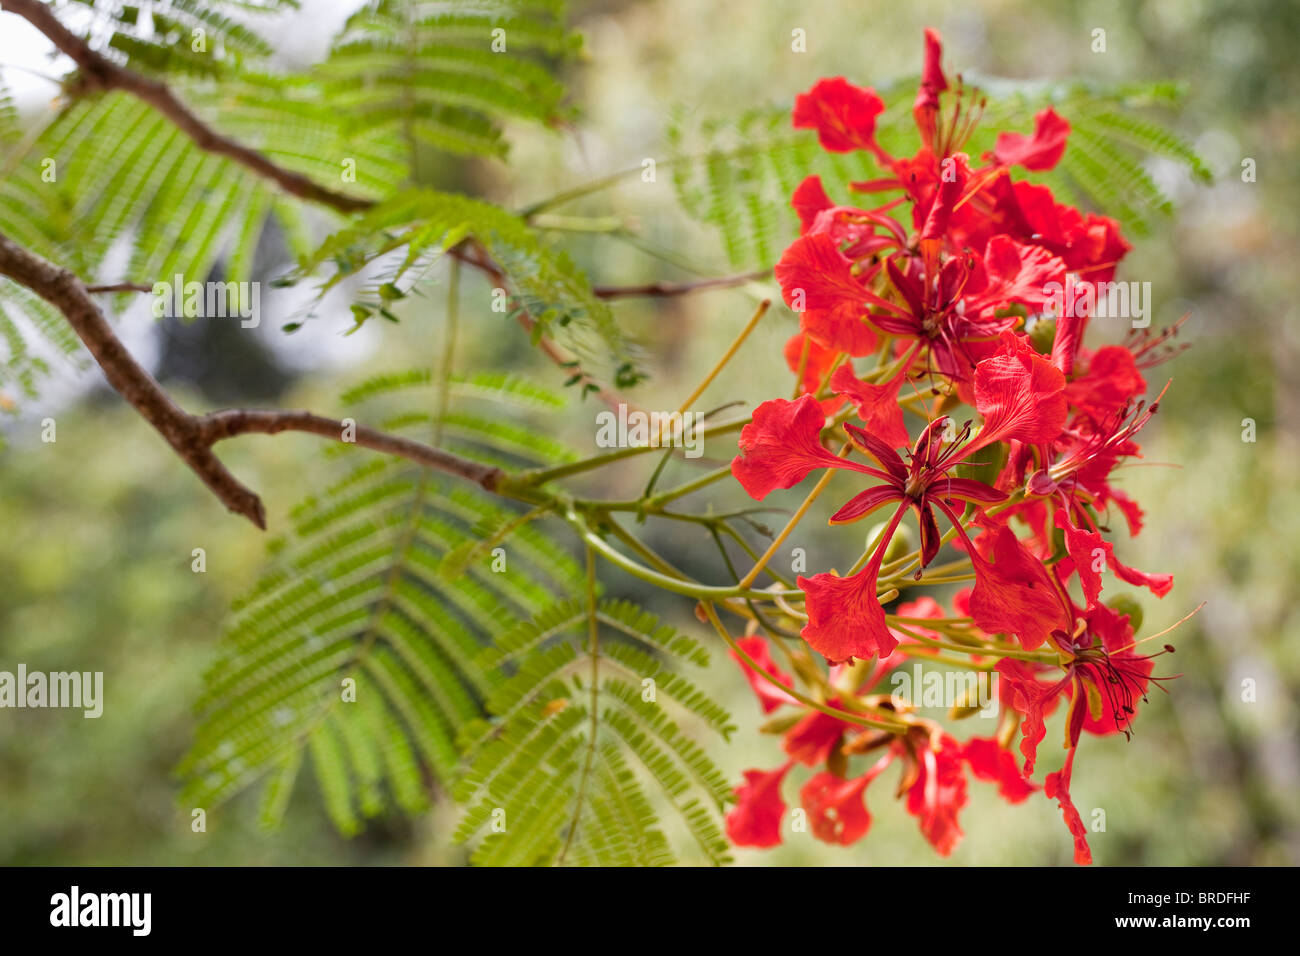 Closeup of a Royal Poinciana tree in bloom on Blanchisseuse Road, Trinidad, Caribbean, West Indies. - Stock Image